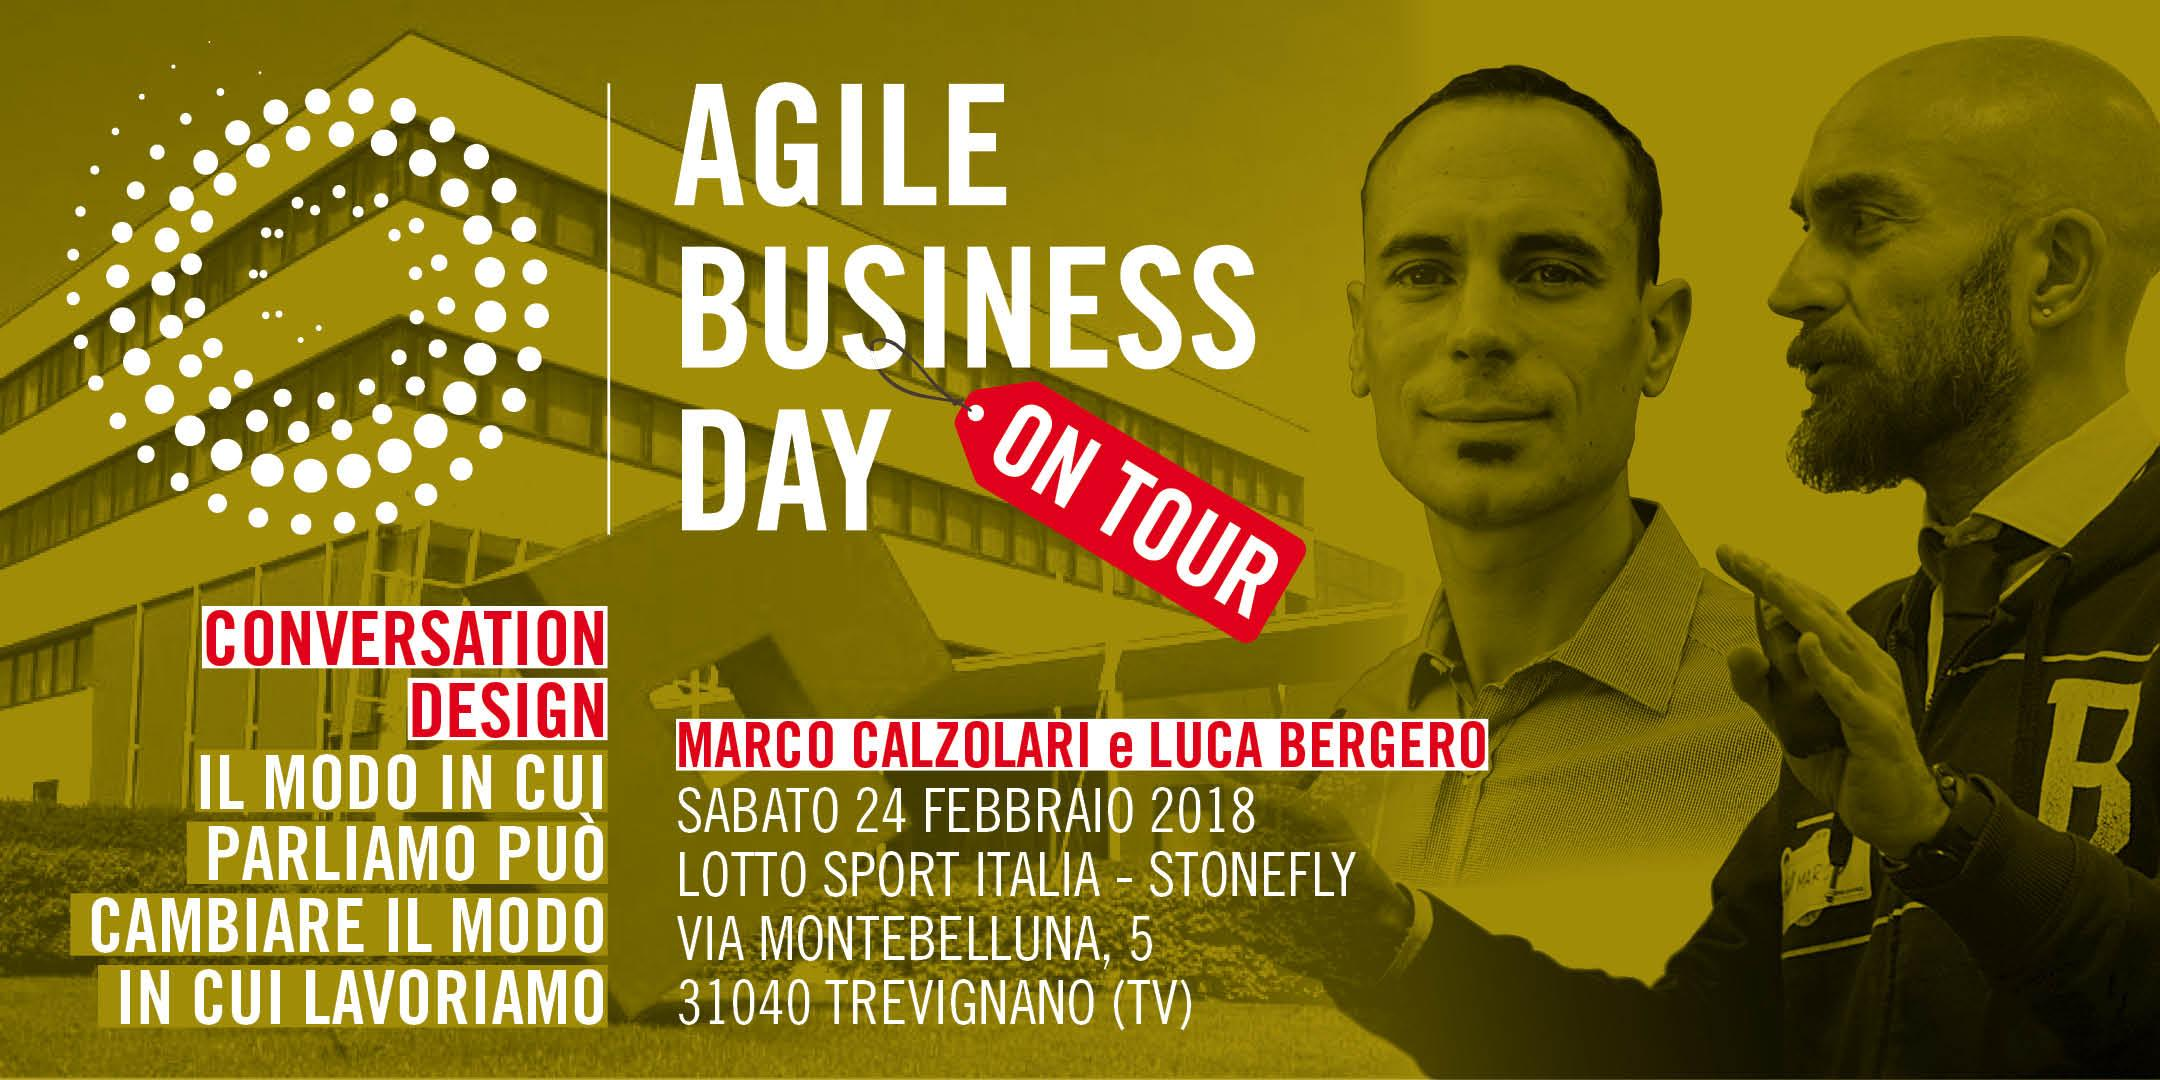 AGILE BUSINESS DAY ON TOUR #3 | Conversation